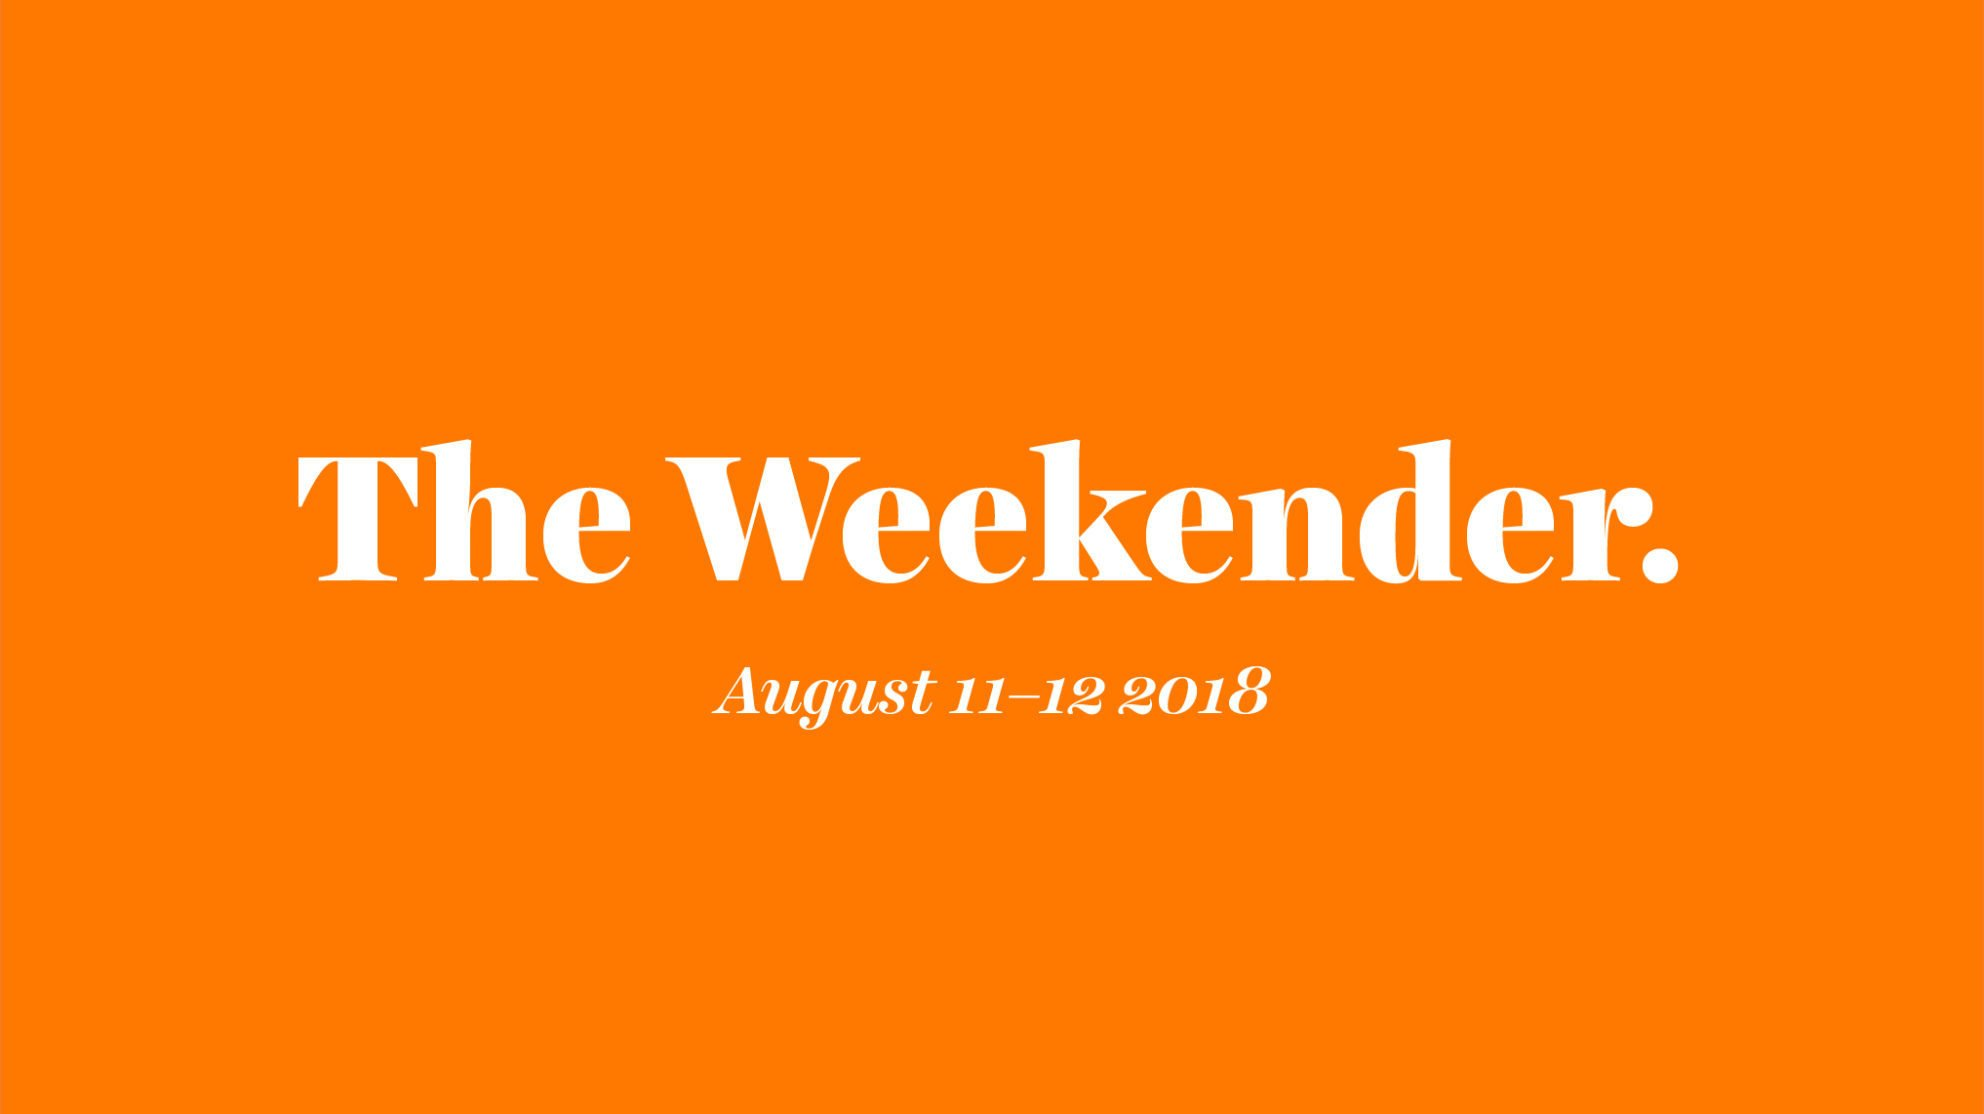 The Inman Weekender, August 11-12, 2018